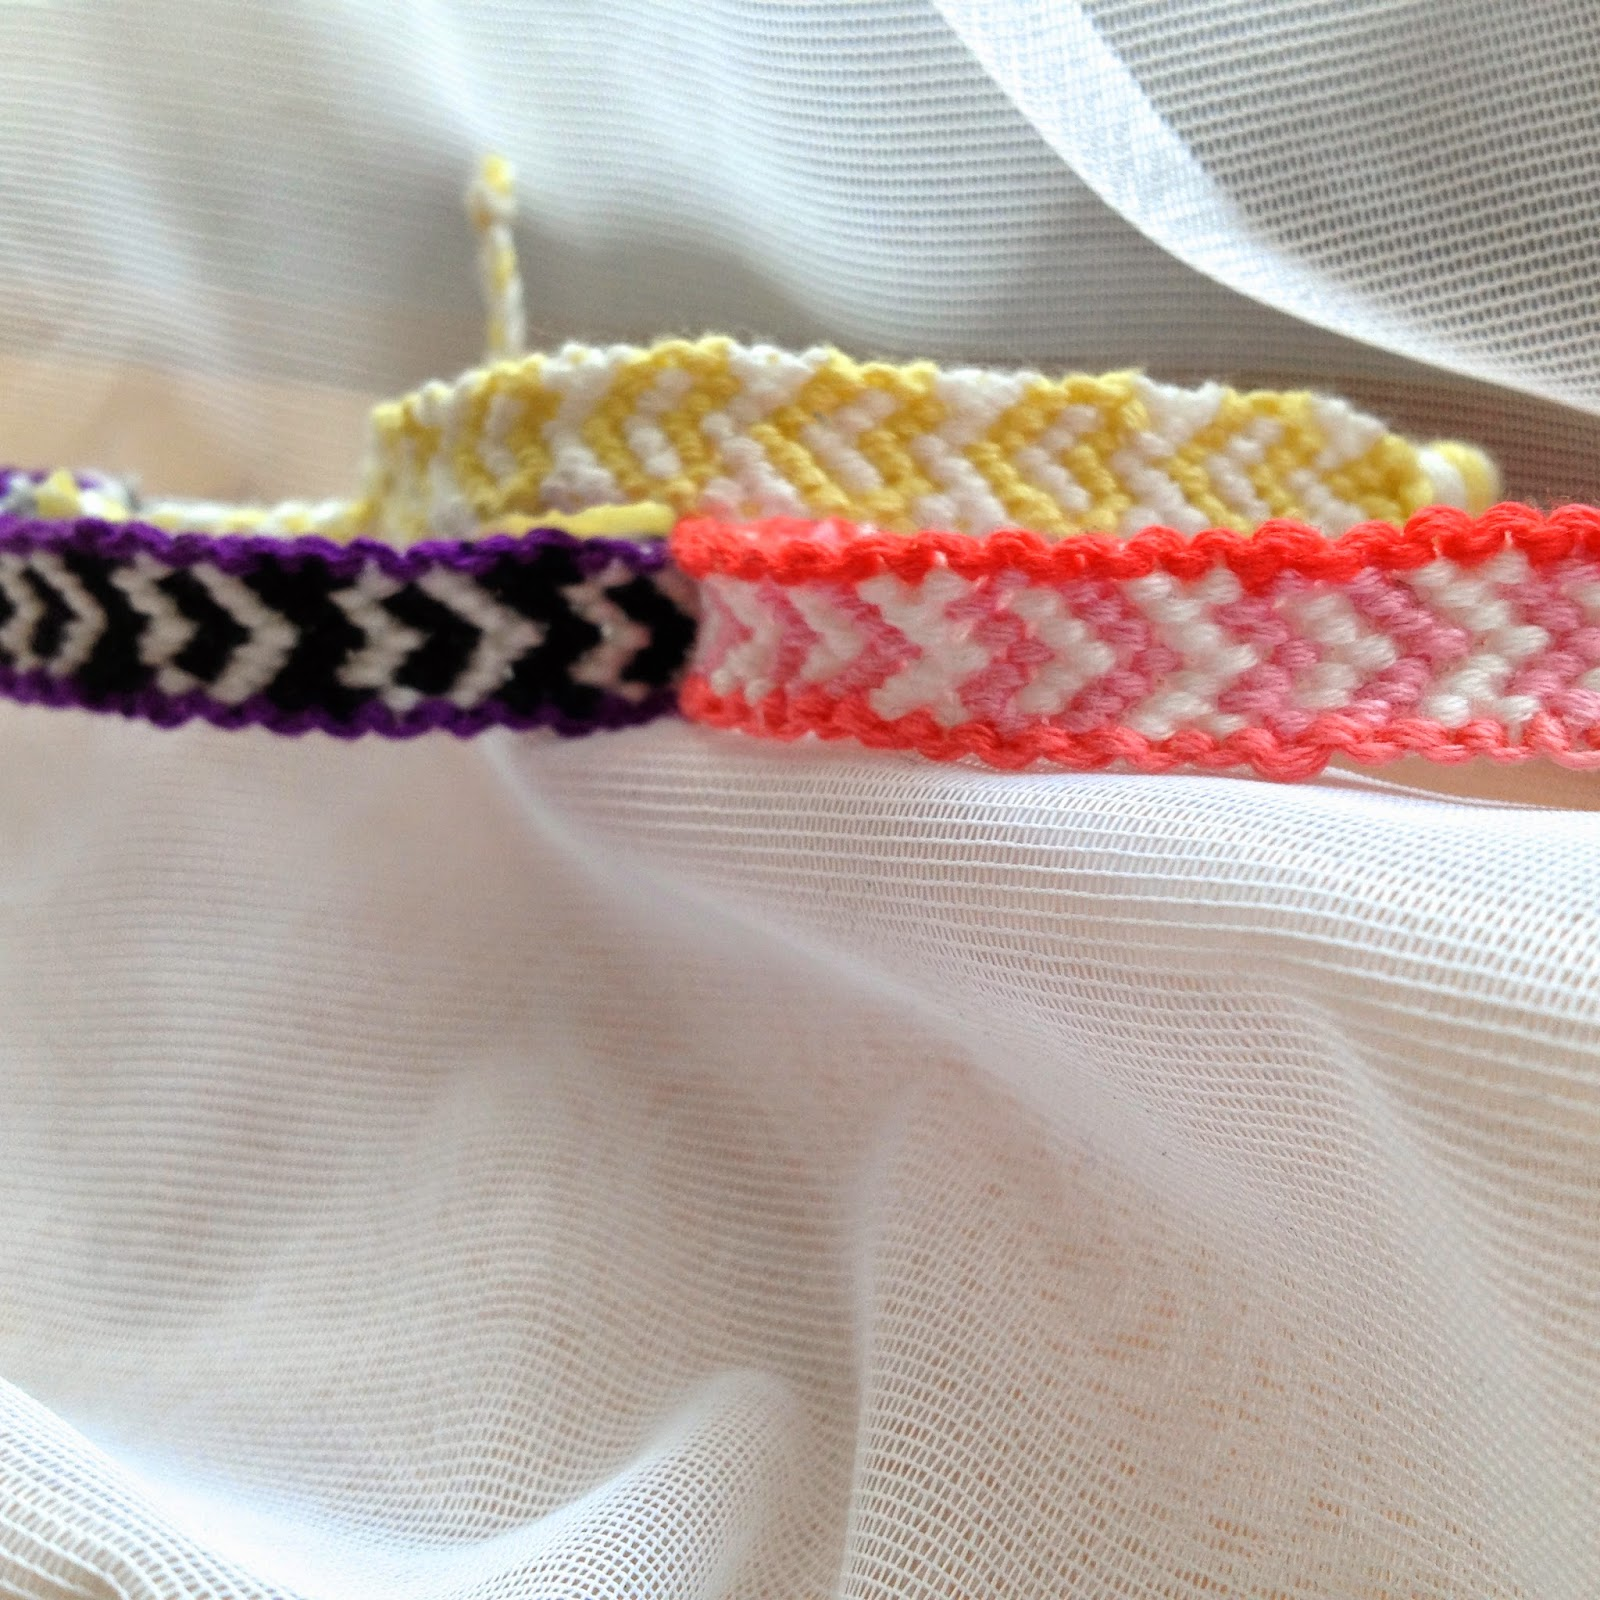 Bordered Heart Friendship Bracelet Tutorial (Life as a Petite)